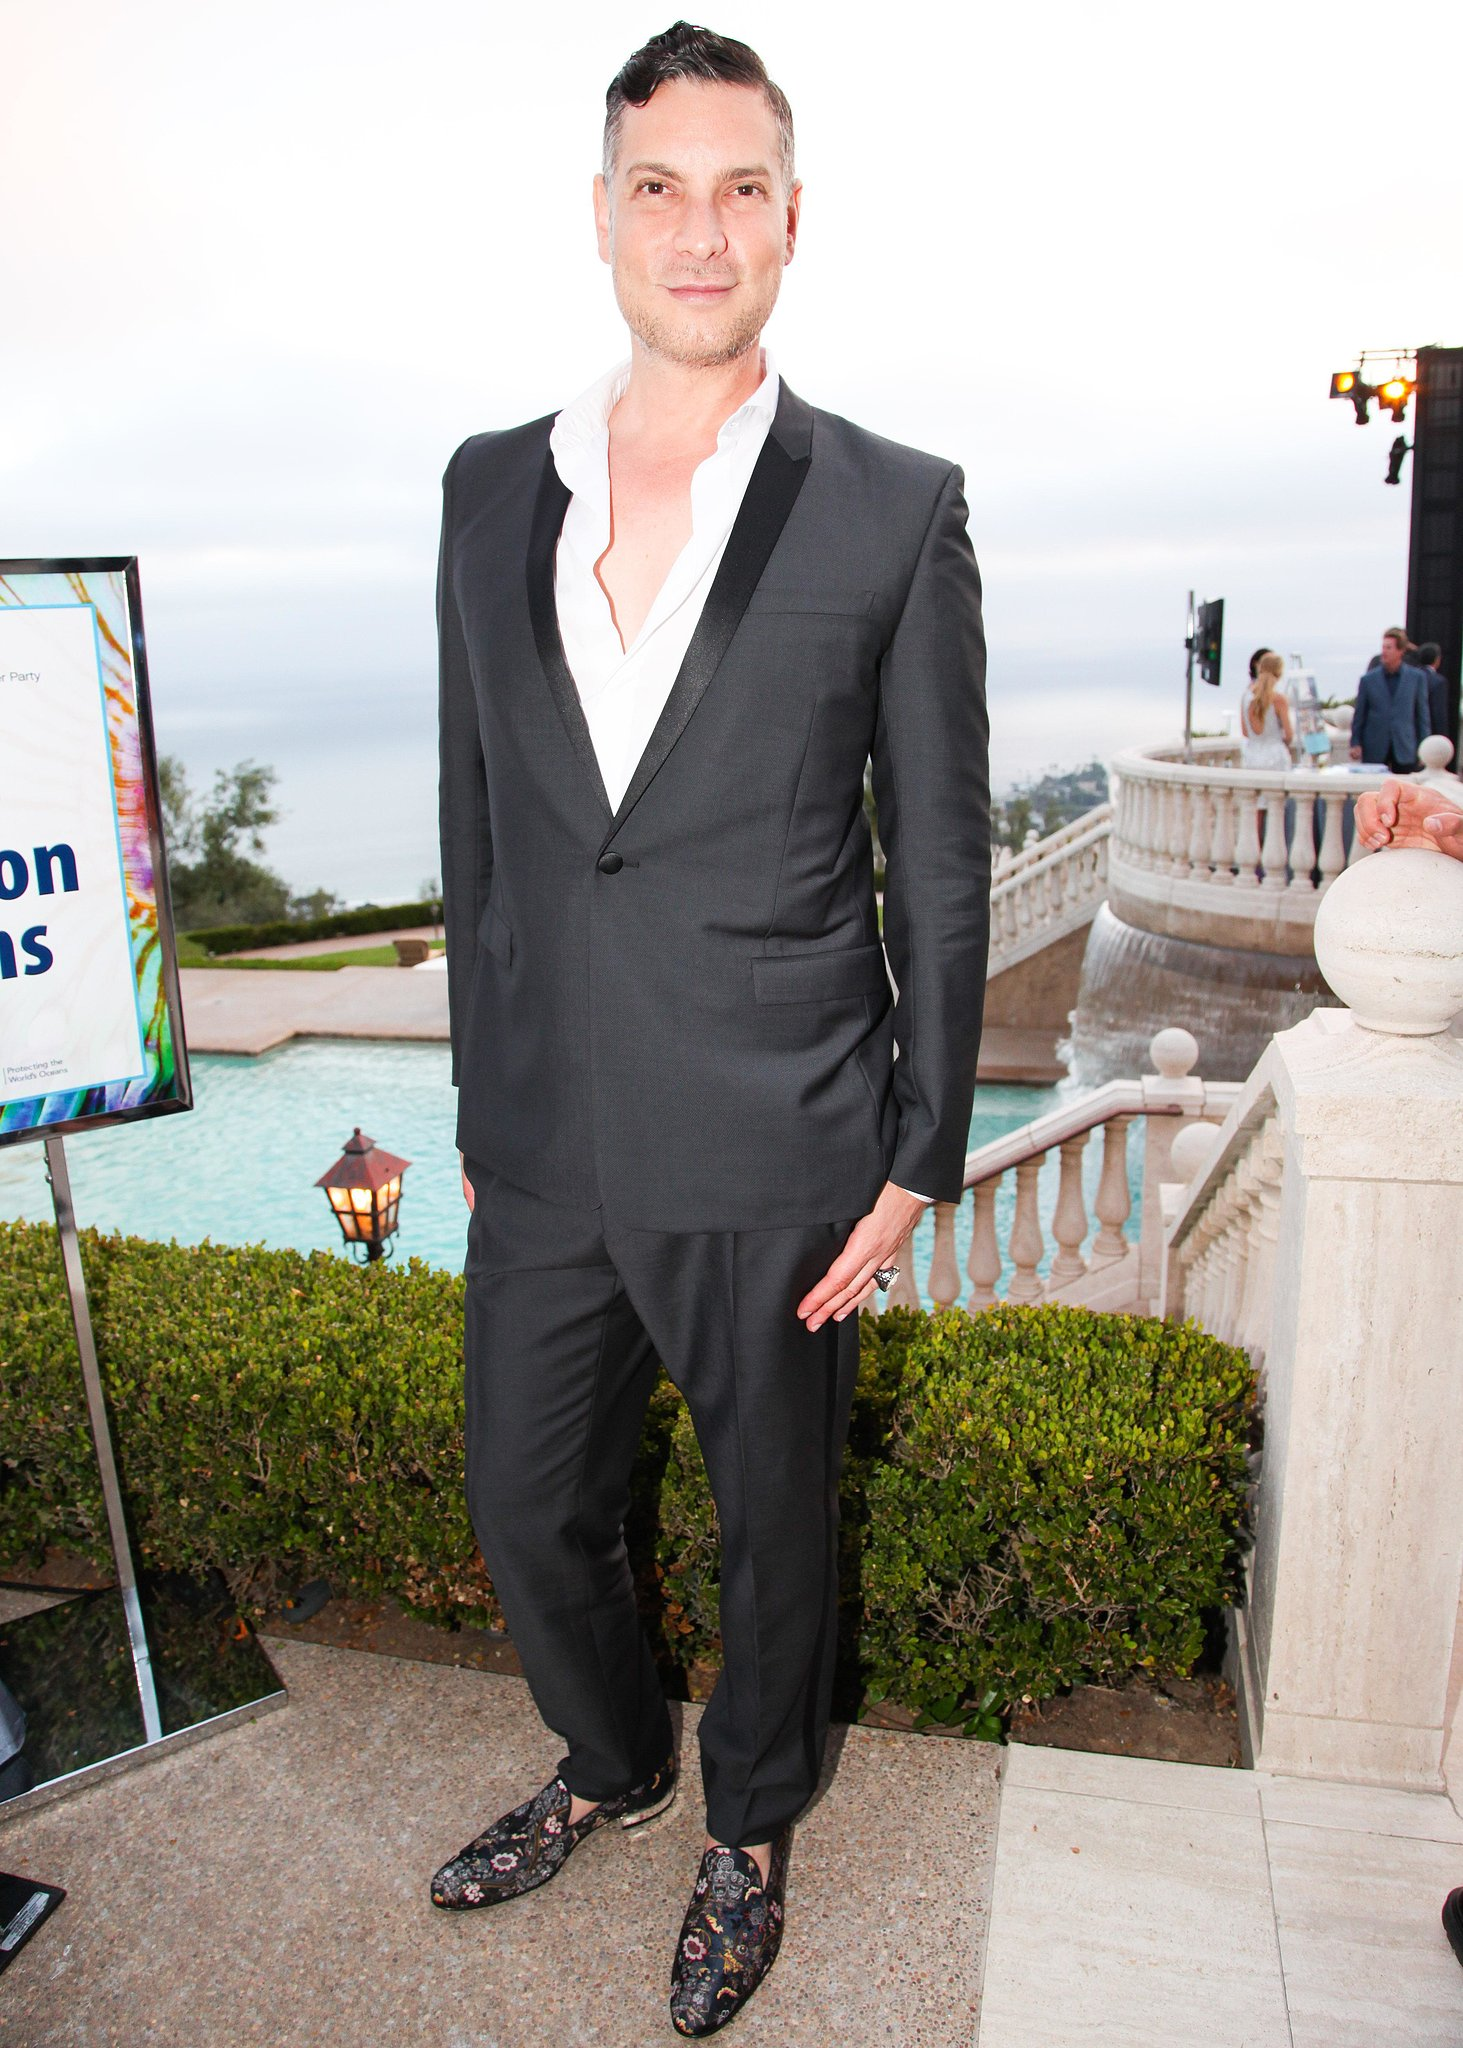 Cameron Silver stepped out in botanical loafers for a good cause at the Oceana Annual SeaChange Summer Party.